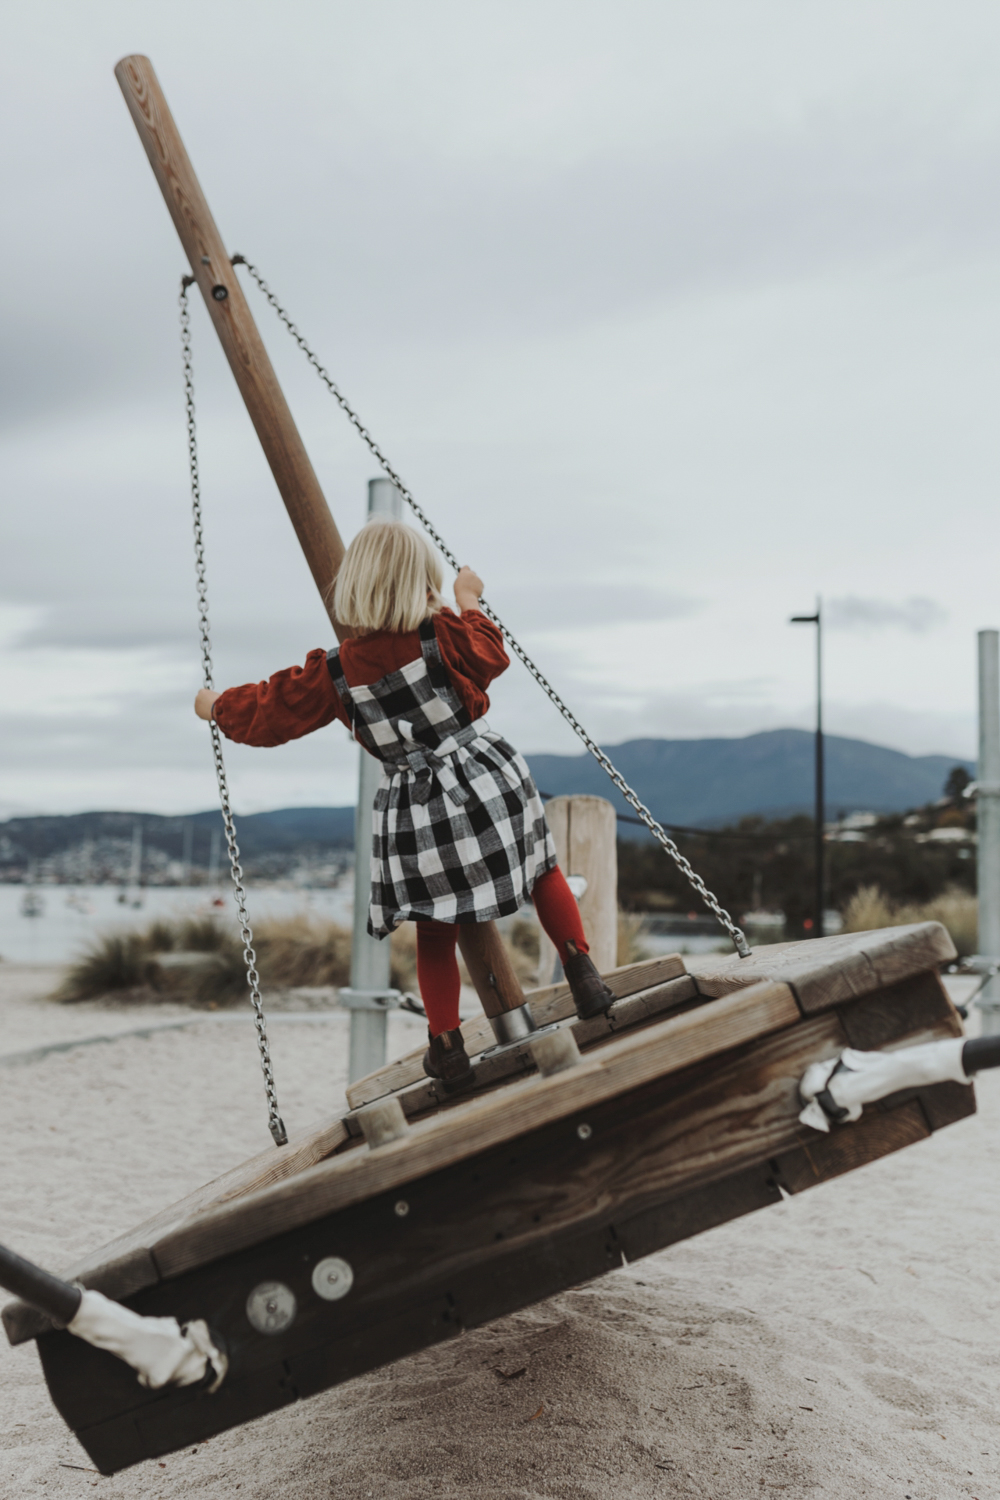 Girl rocks sail boat wearing plaid dress.